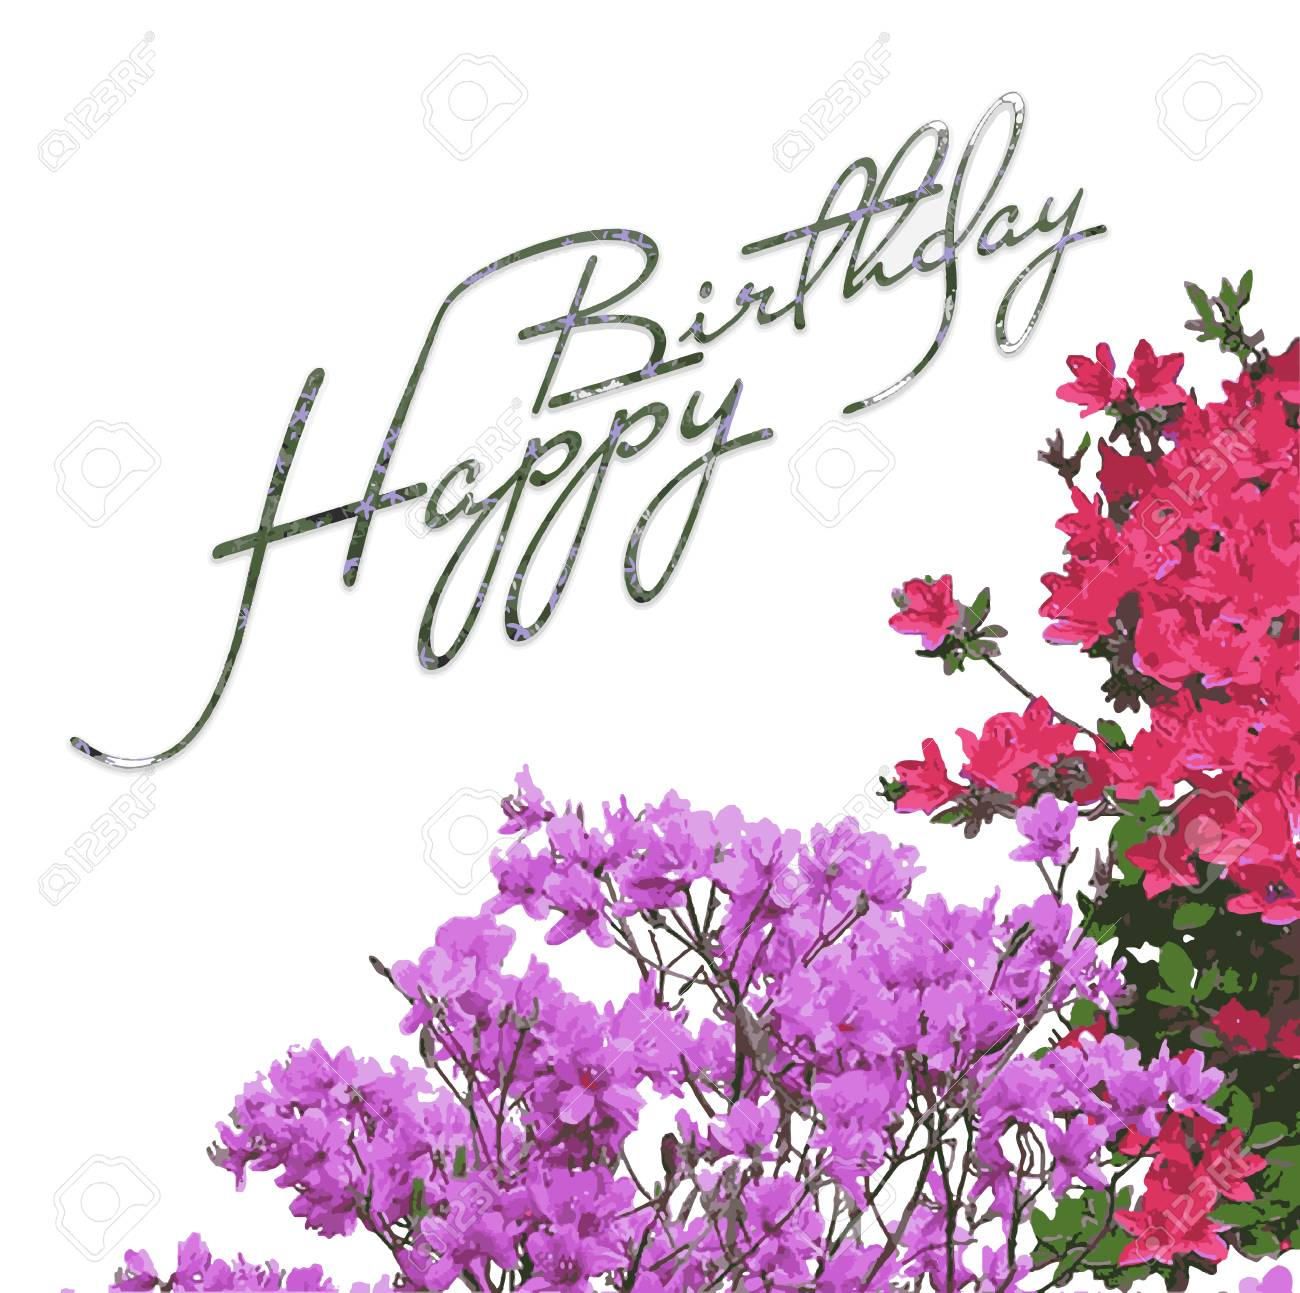 Happy birthday flowers greeting card vector picture royalty free happy birthday flowers greeting card vector picture stock vector 75547557 izmirmasajfo